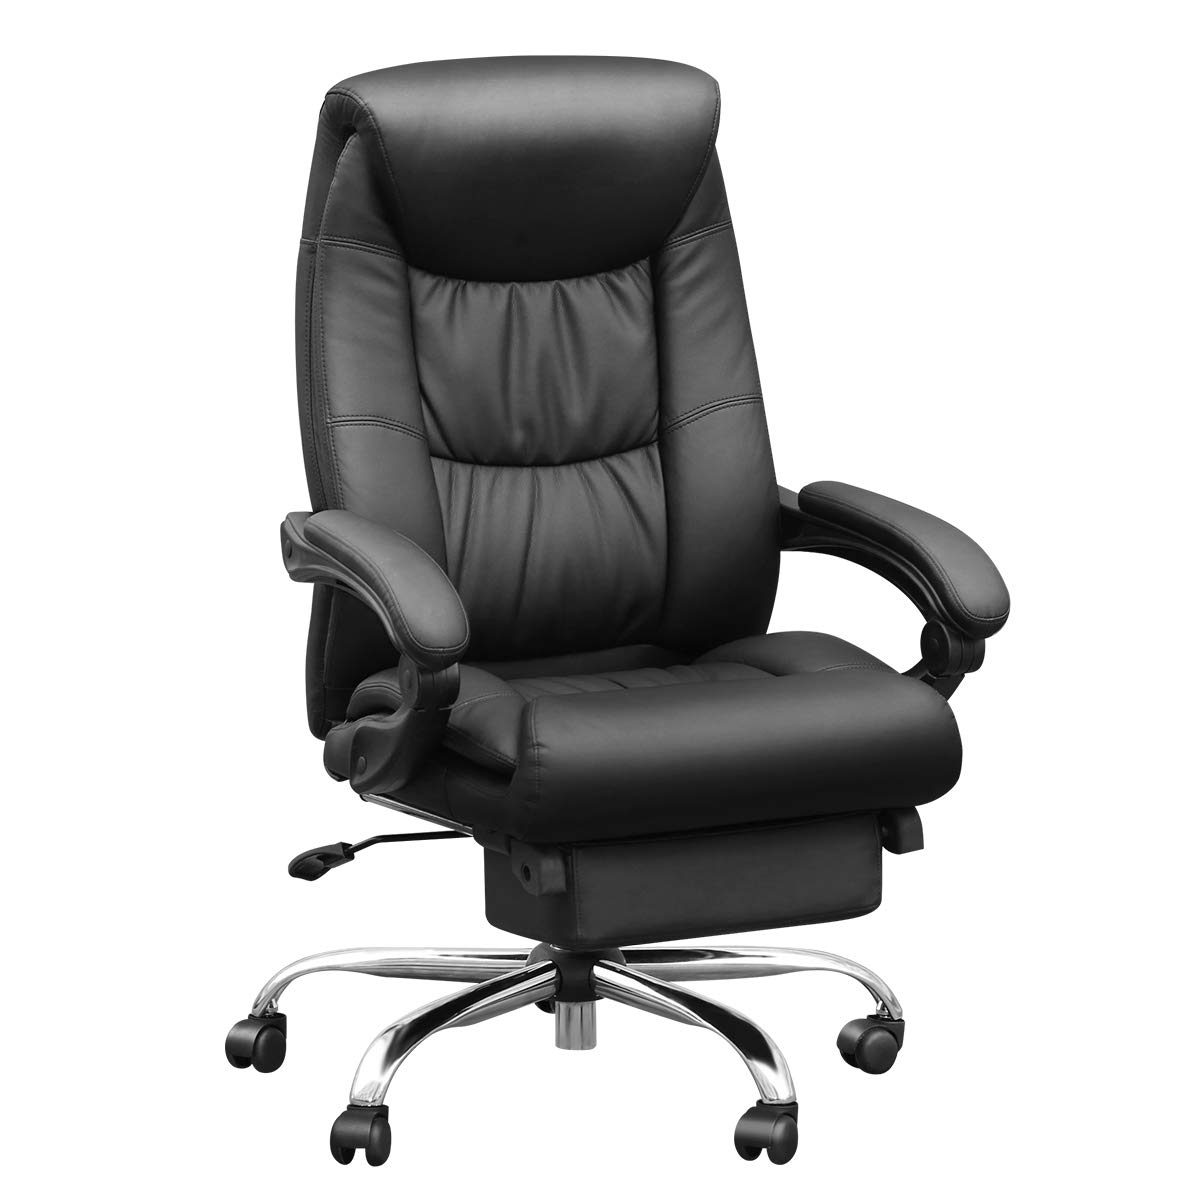 Best ergonomic office chairs: Duramont leather reclining desk chair